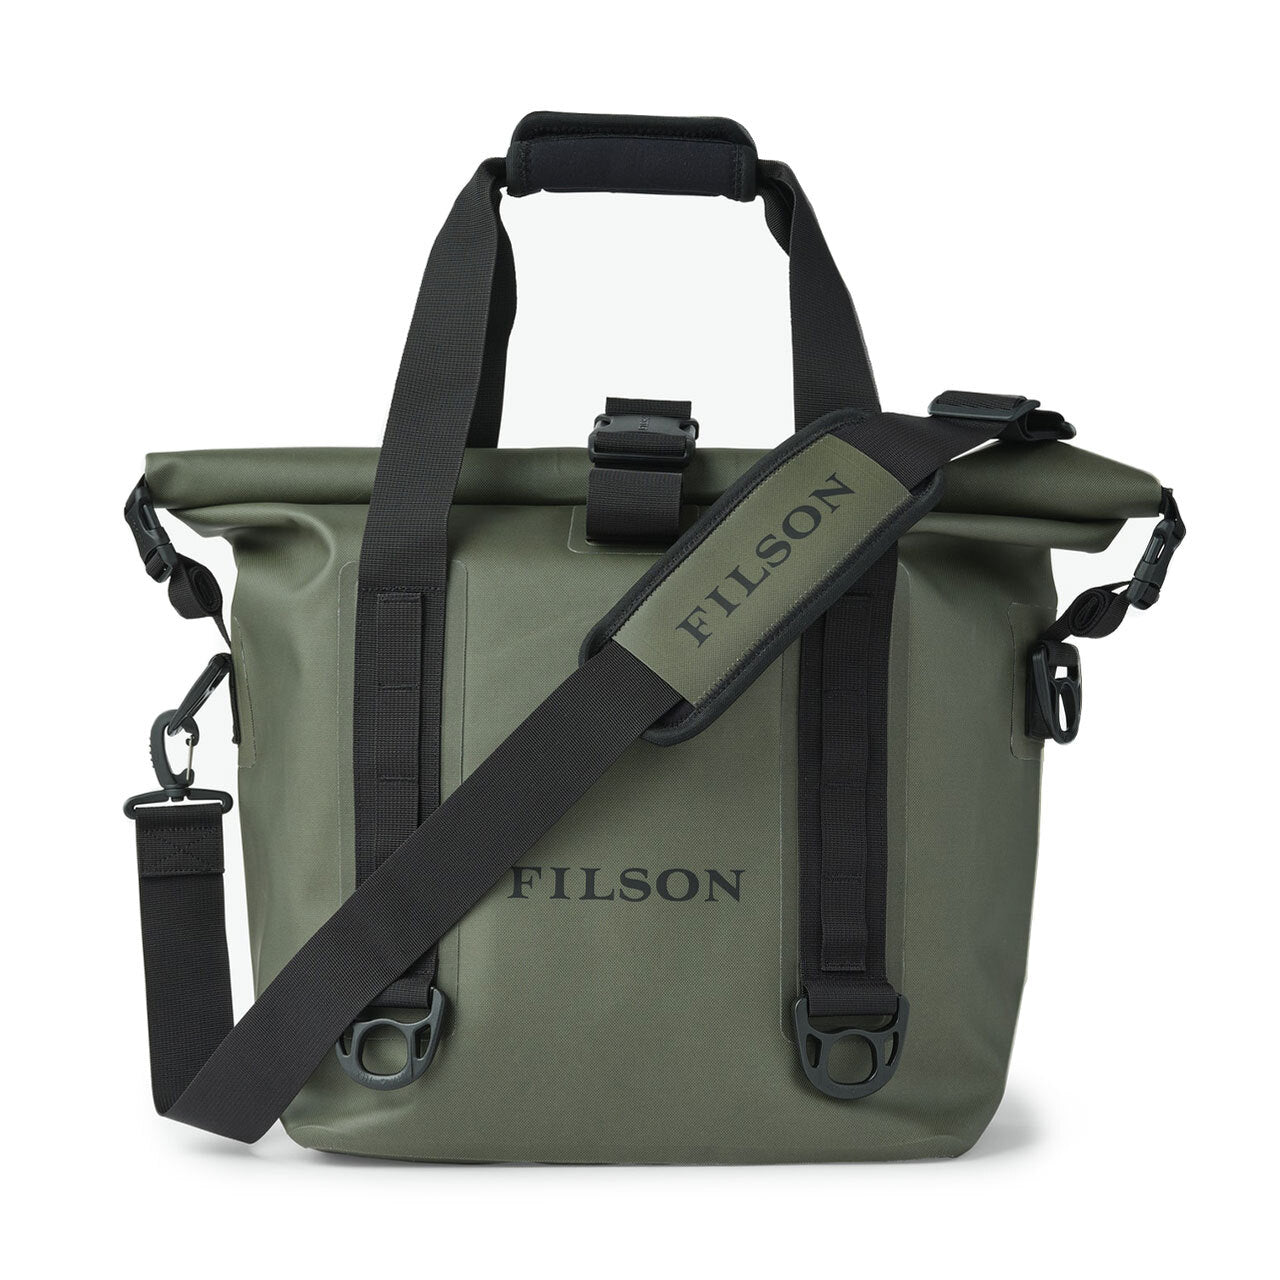 Filson Roll Top Dry Tote